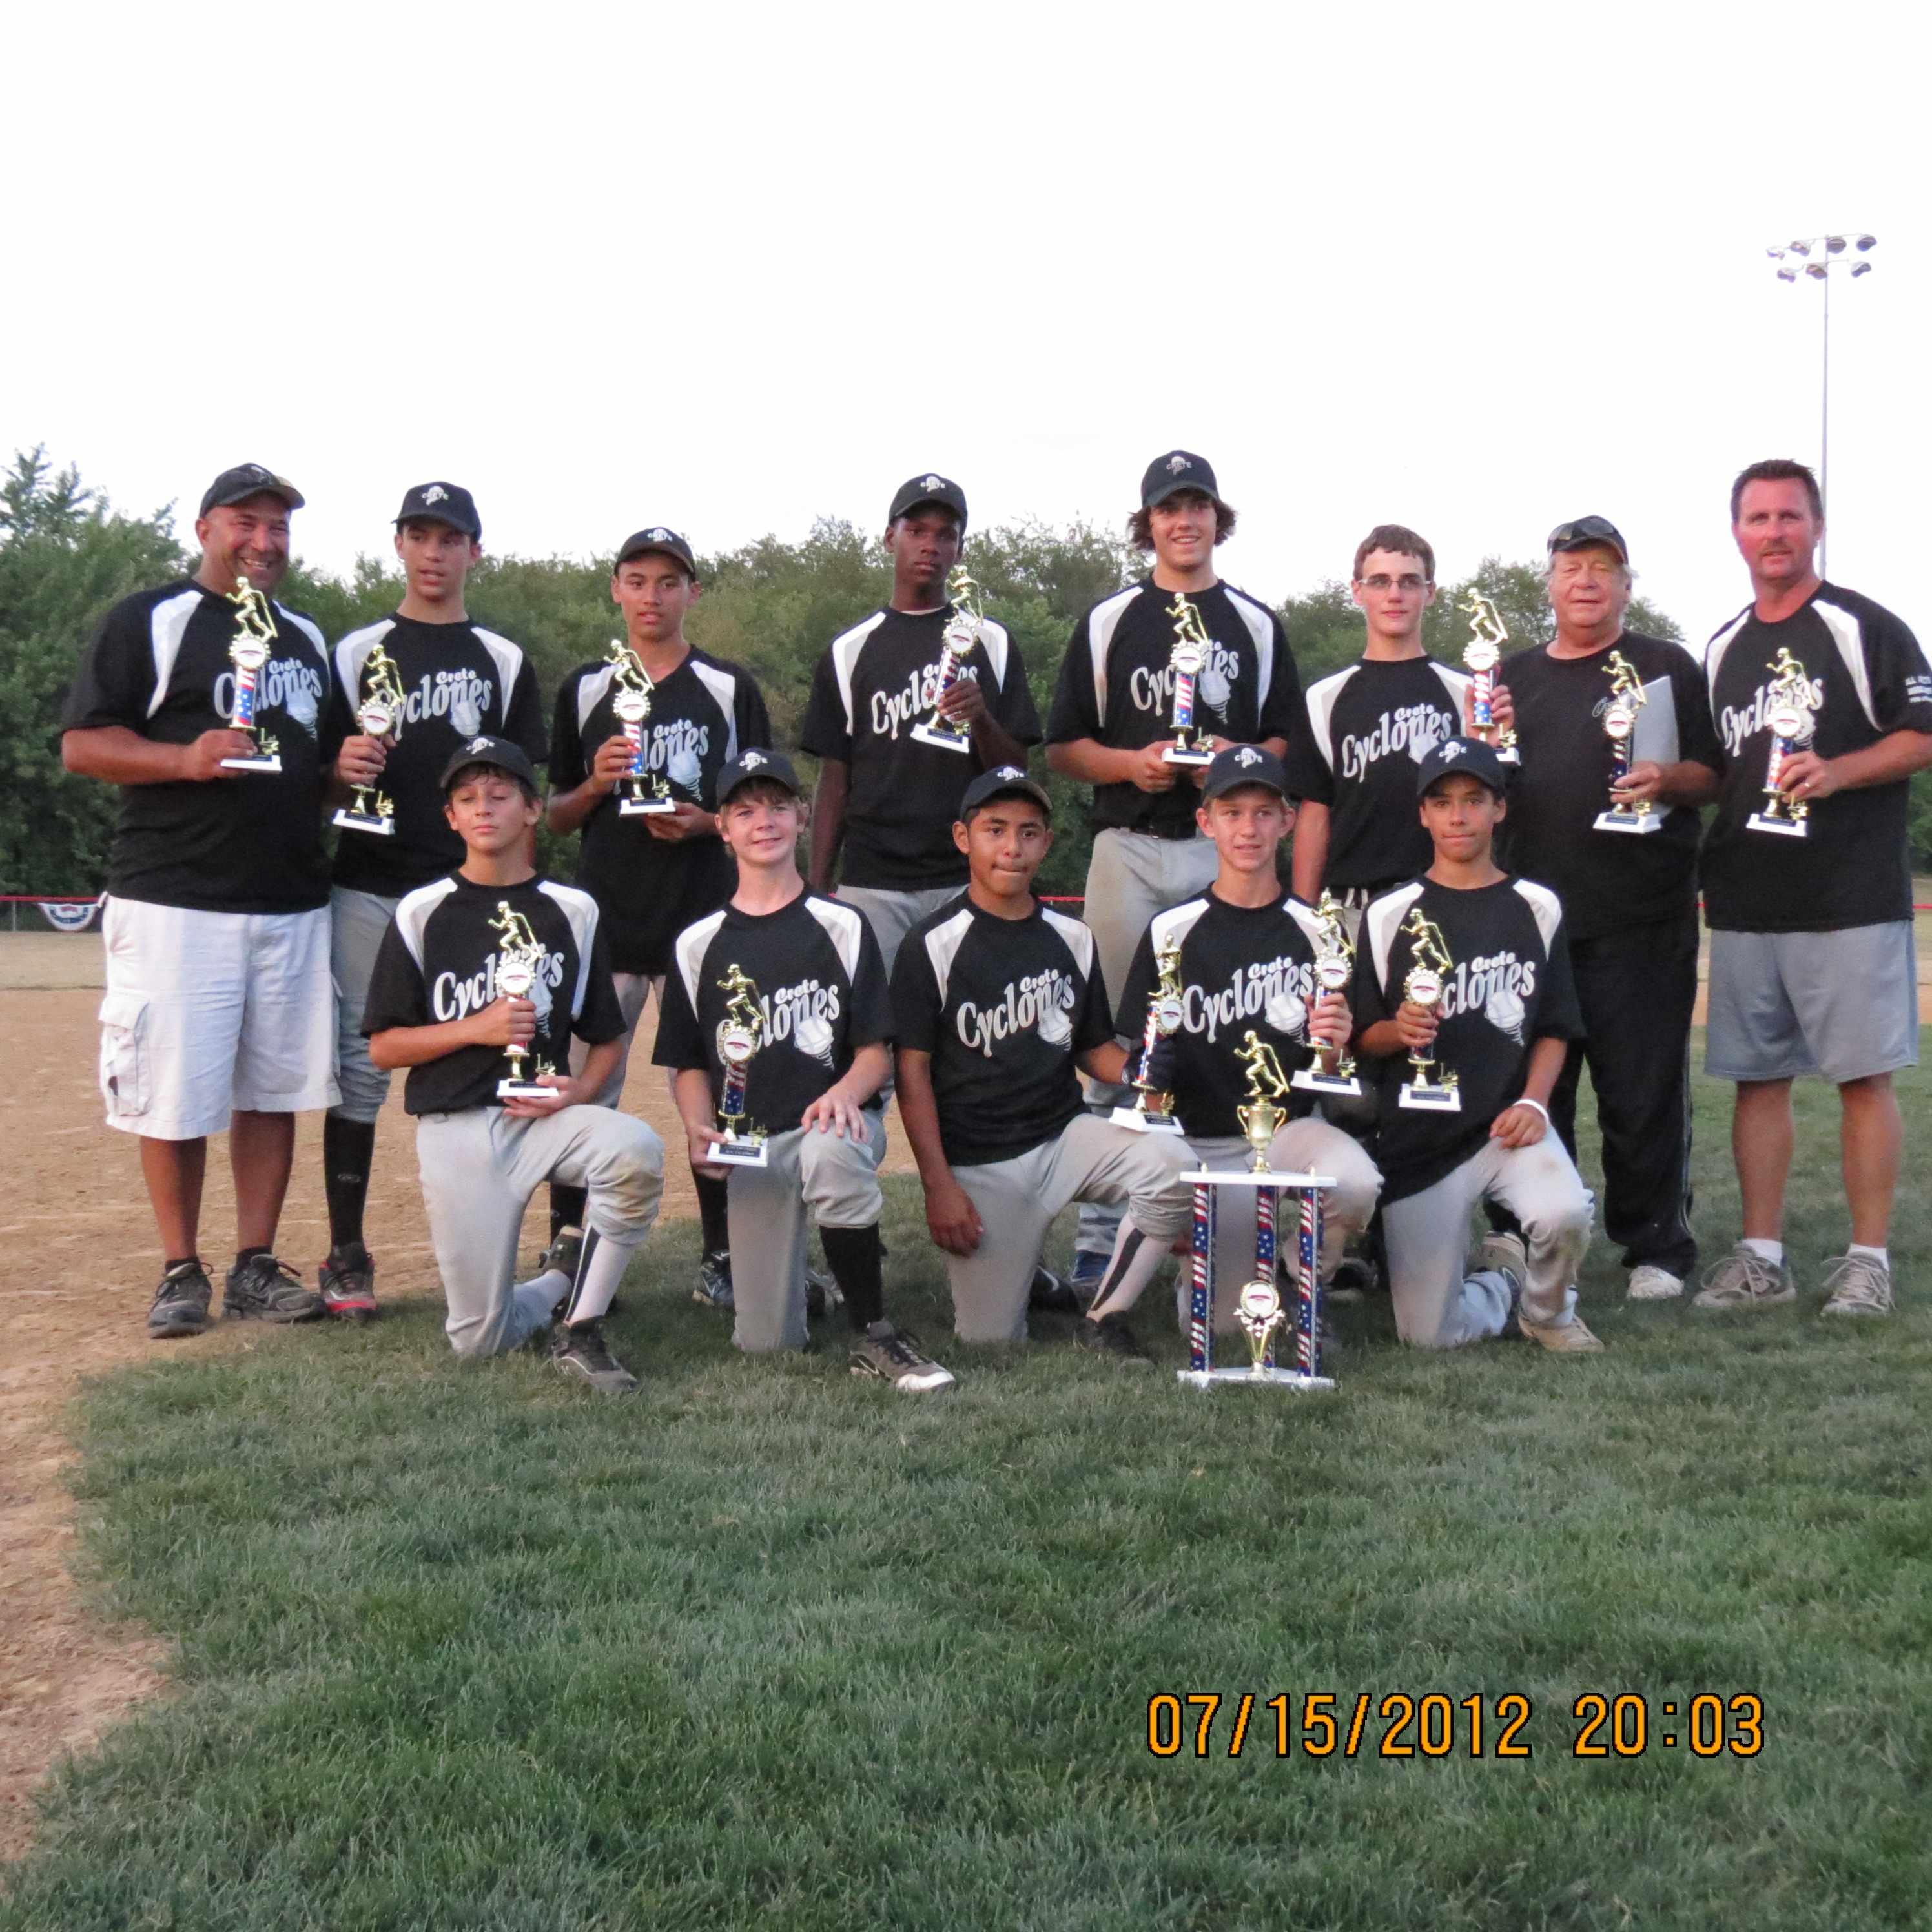 13u Crete Cyclones New Lenox Champs